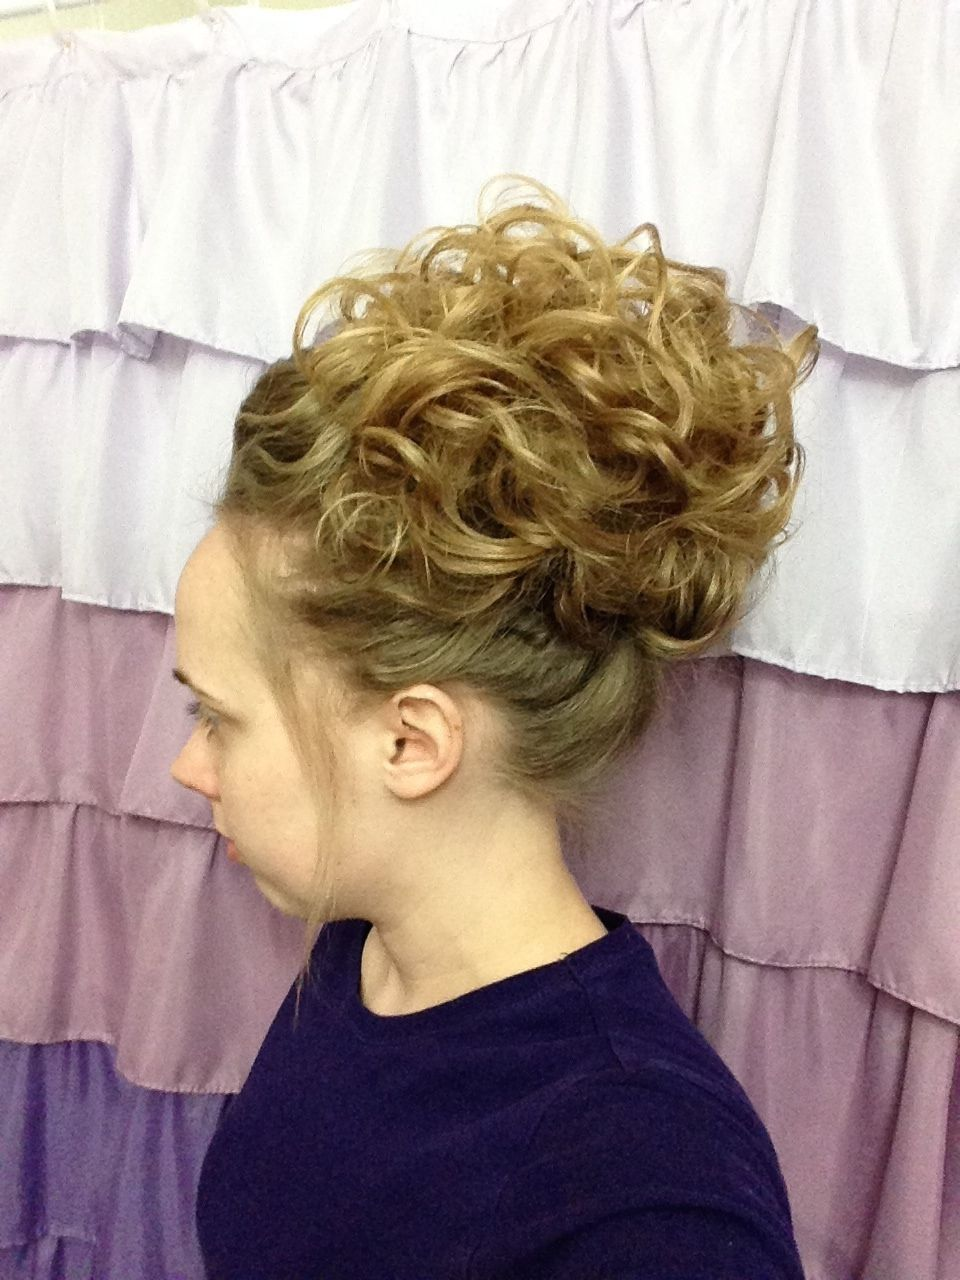 Ha Hair Accessories For Apostolic Long Hair - Pentecostal hair curly updo